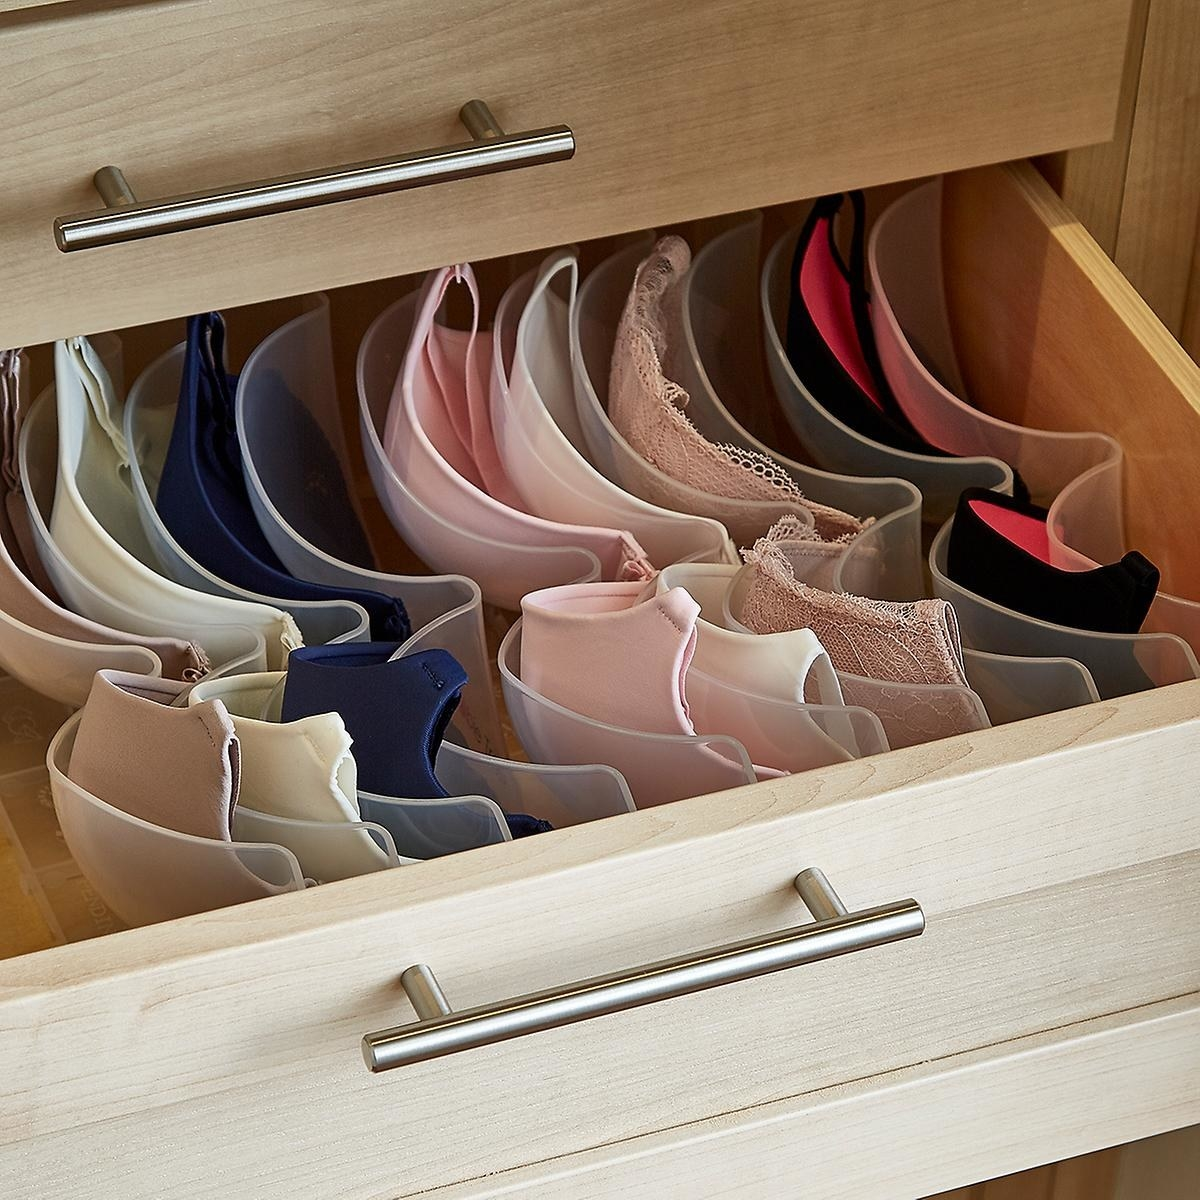 open drawer with cup-shaped bra organizer in the drawer